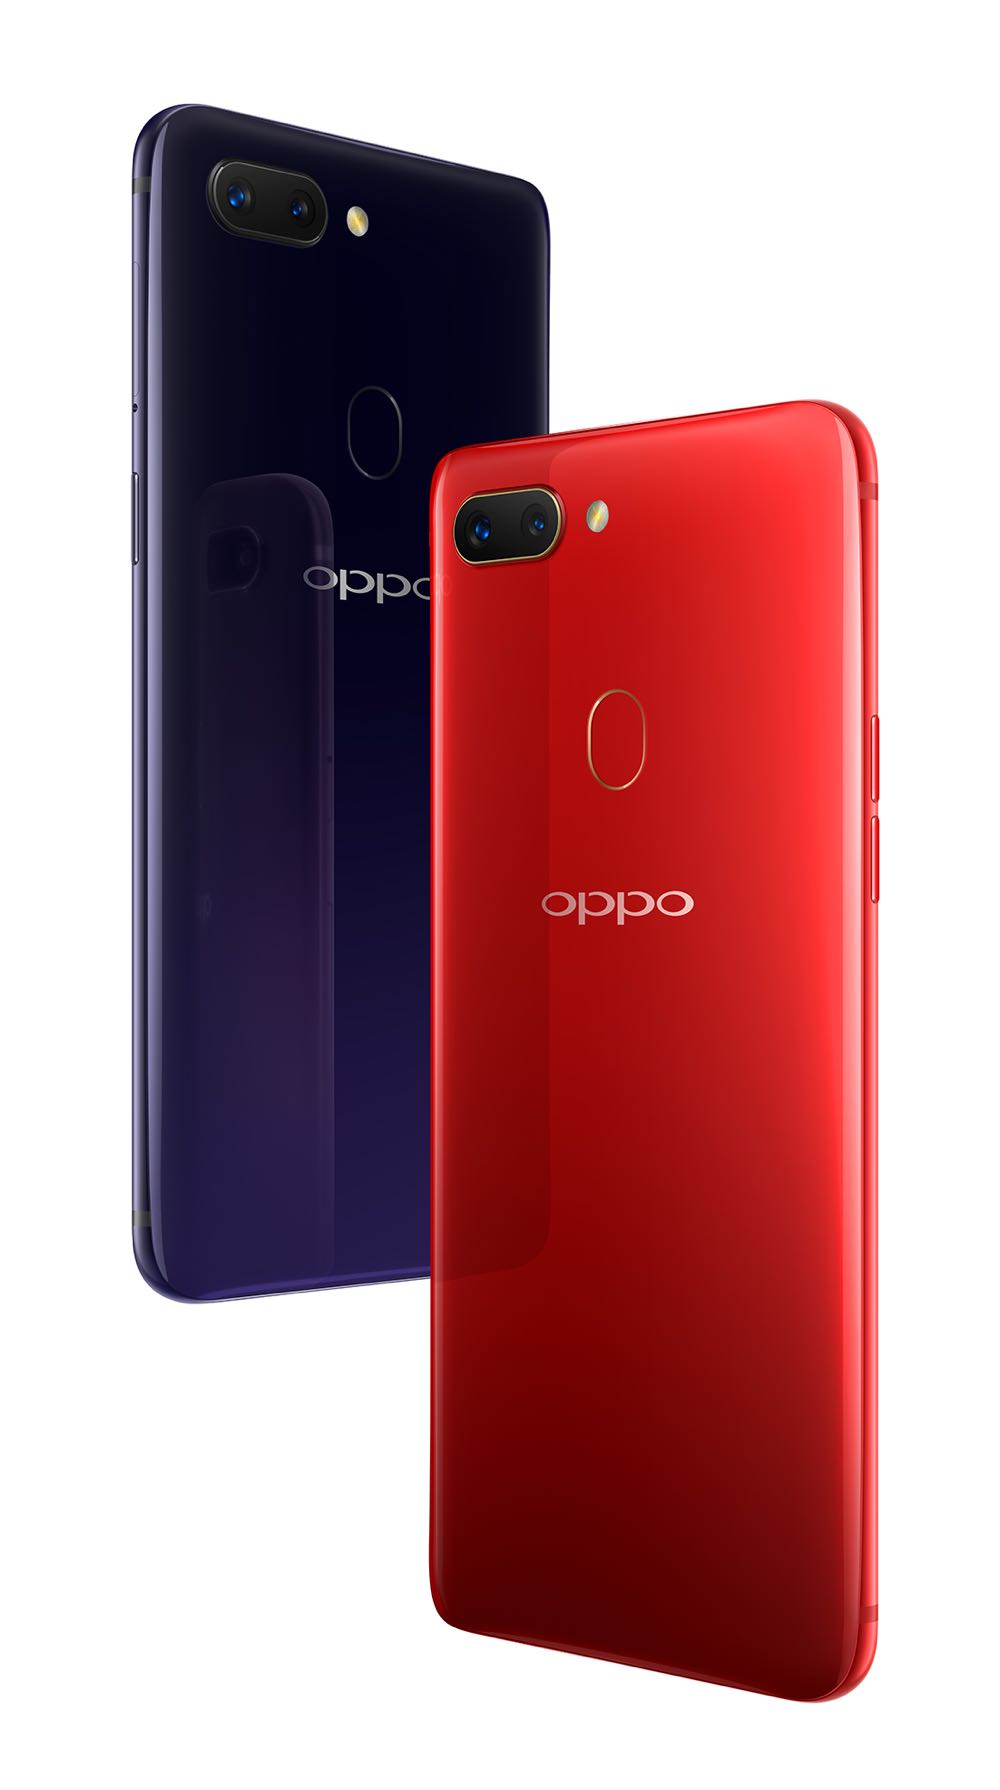 Oppo launches the R15 and R15 Pro smartphones which include a luxury